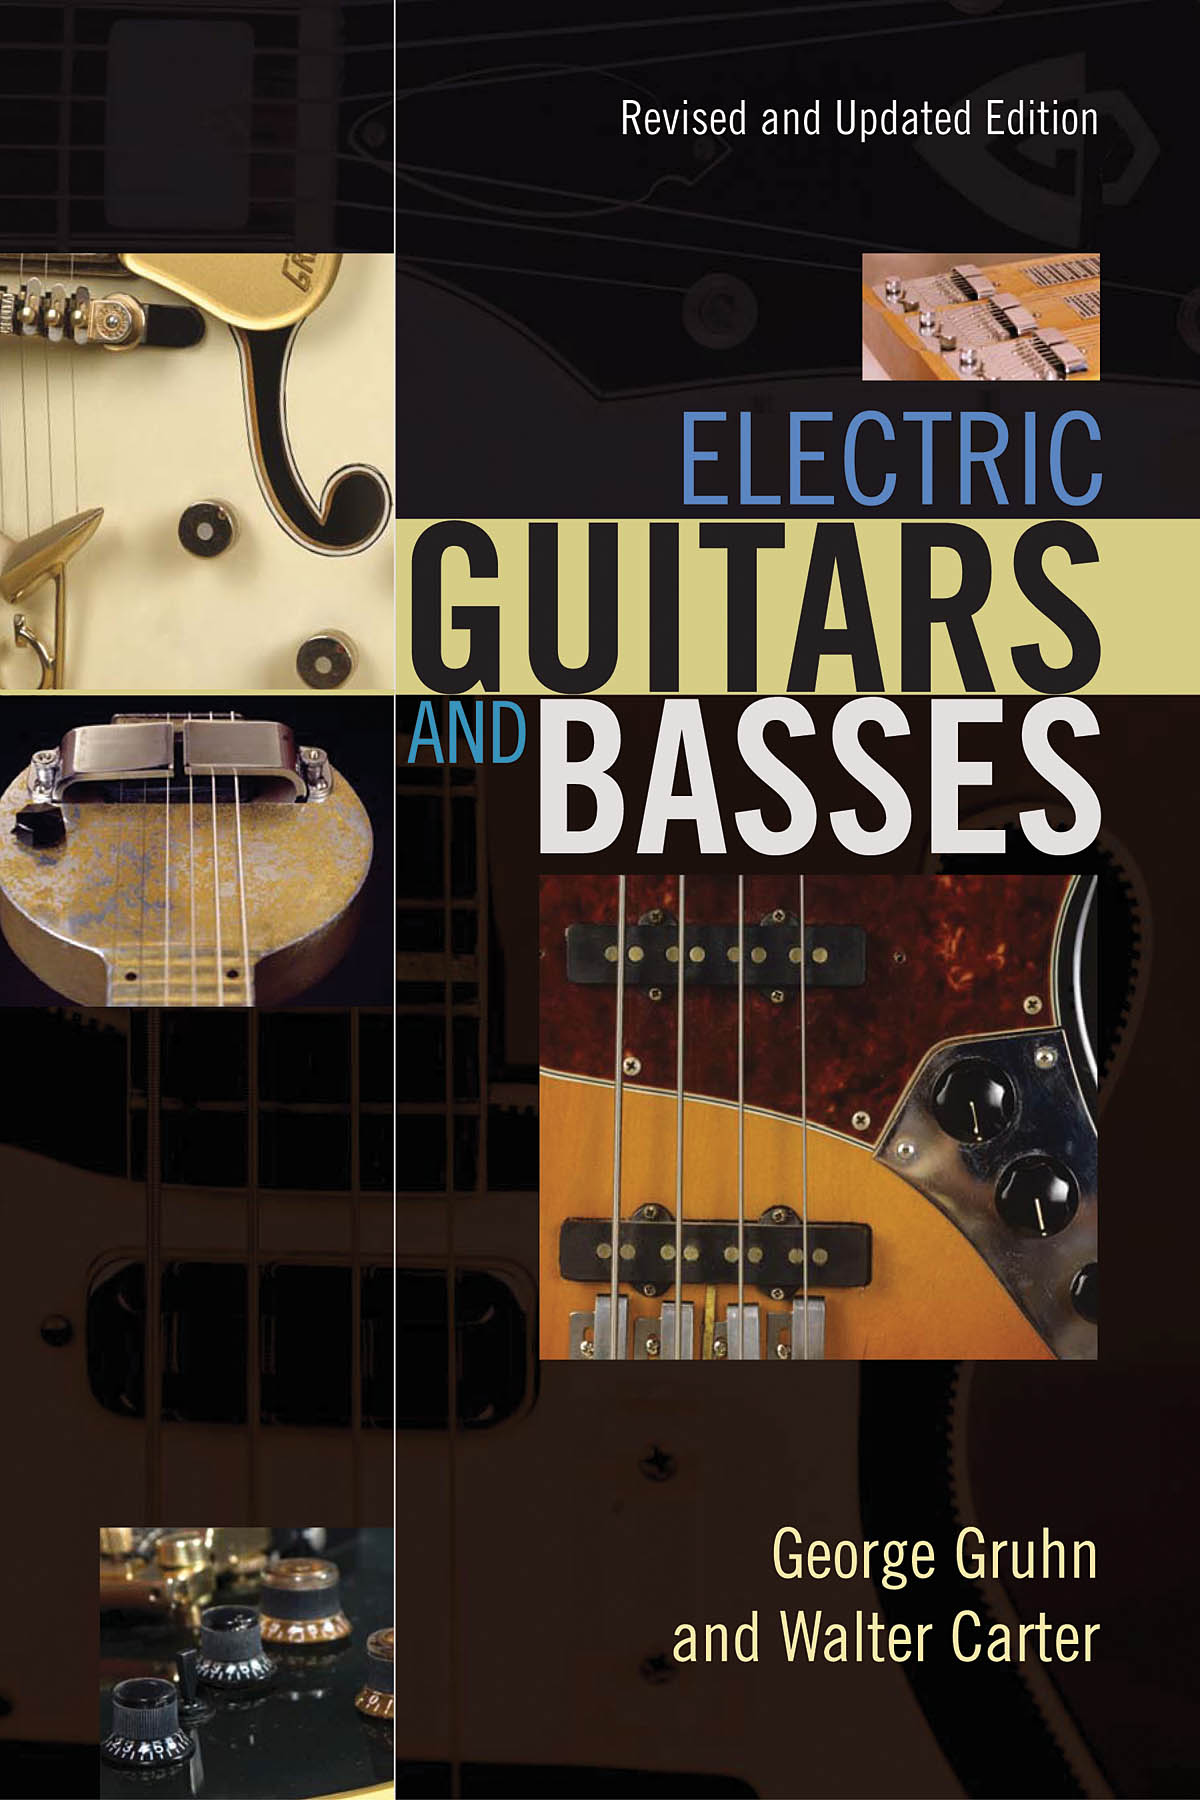 Walter Carter: El. Guitars And Basses - A Photographic History: Reference Books: